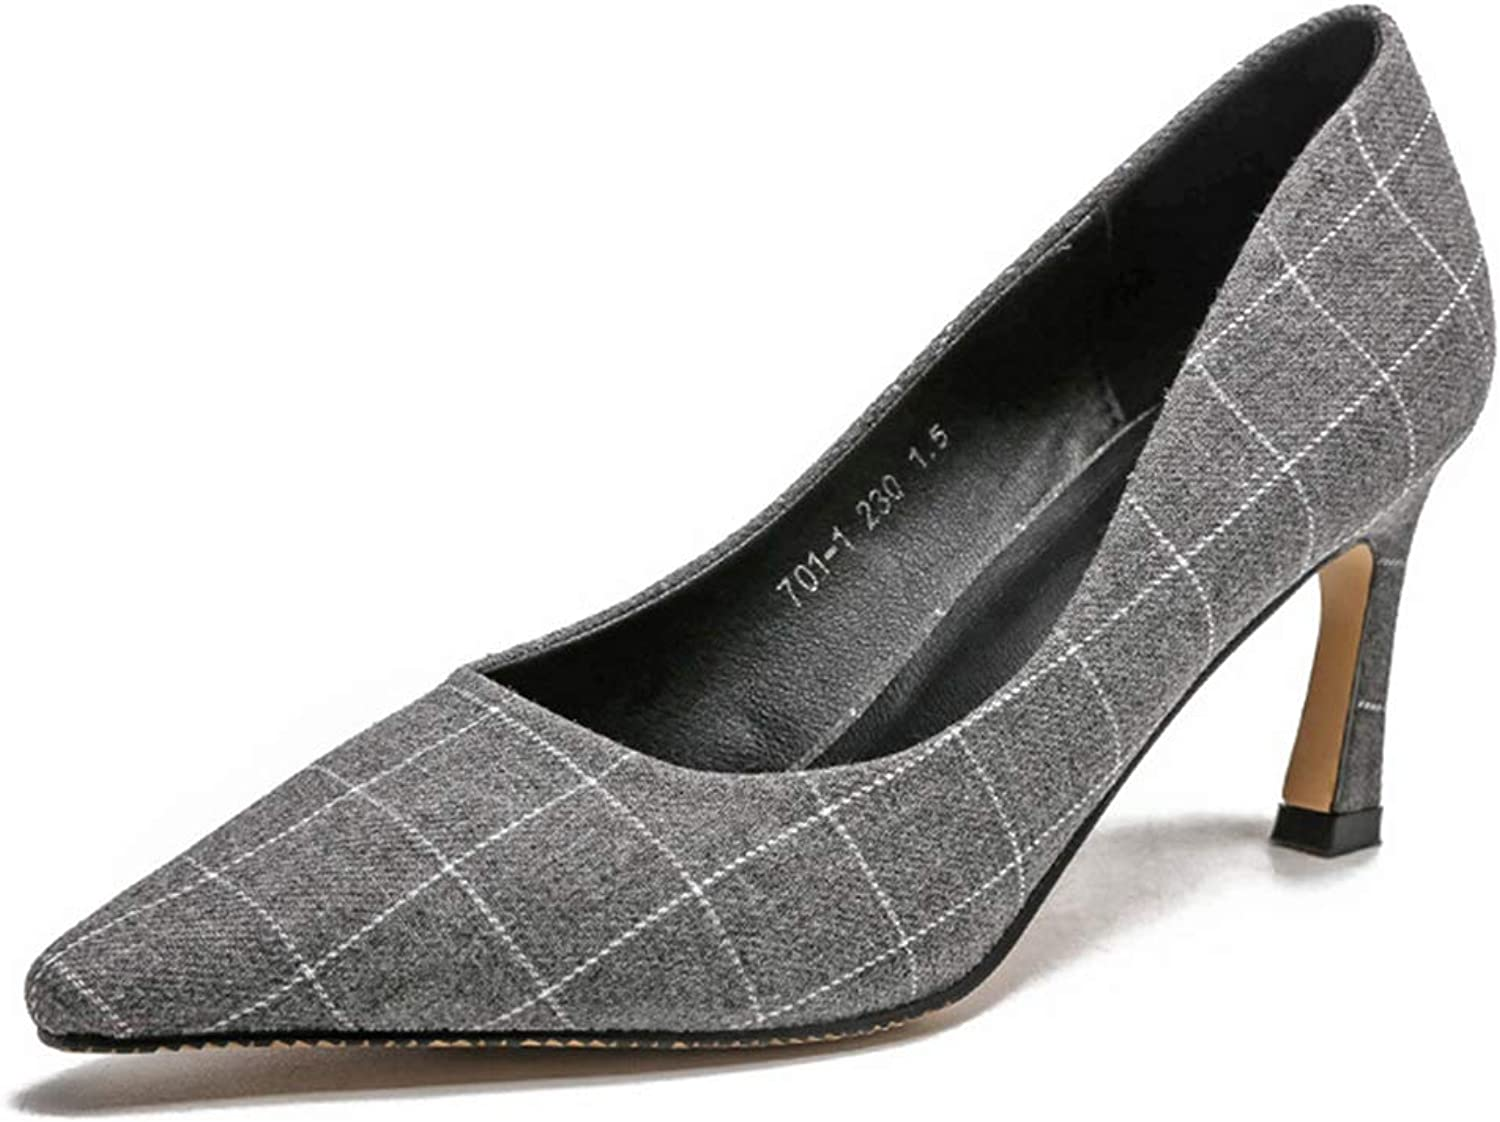 Sam Carle Womens Pumps,Pointed Toe High Heel Slip On Comfortable Casual Black Grey Spring Pumps